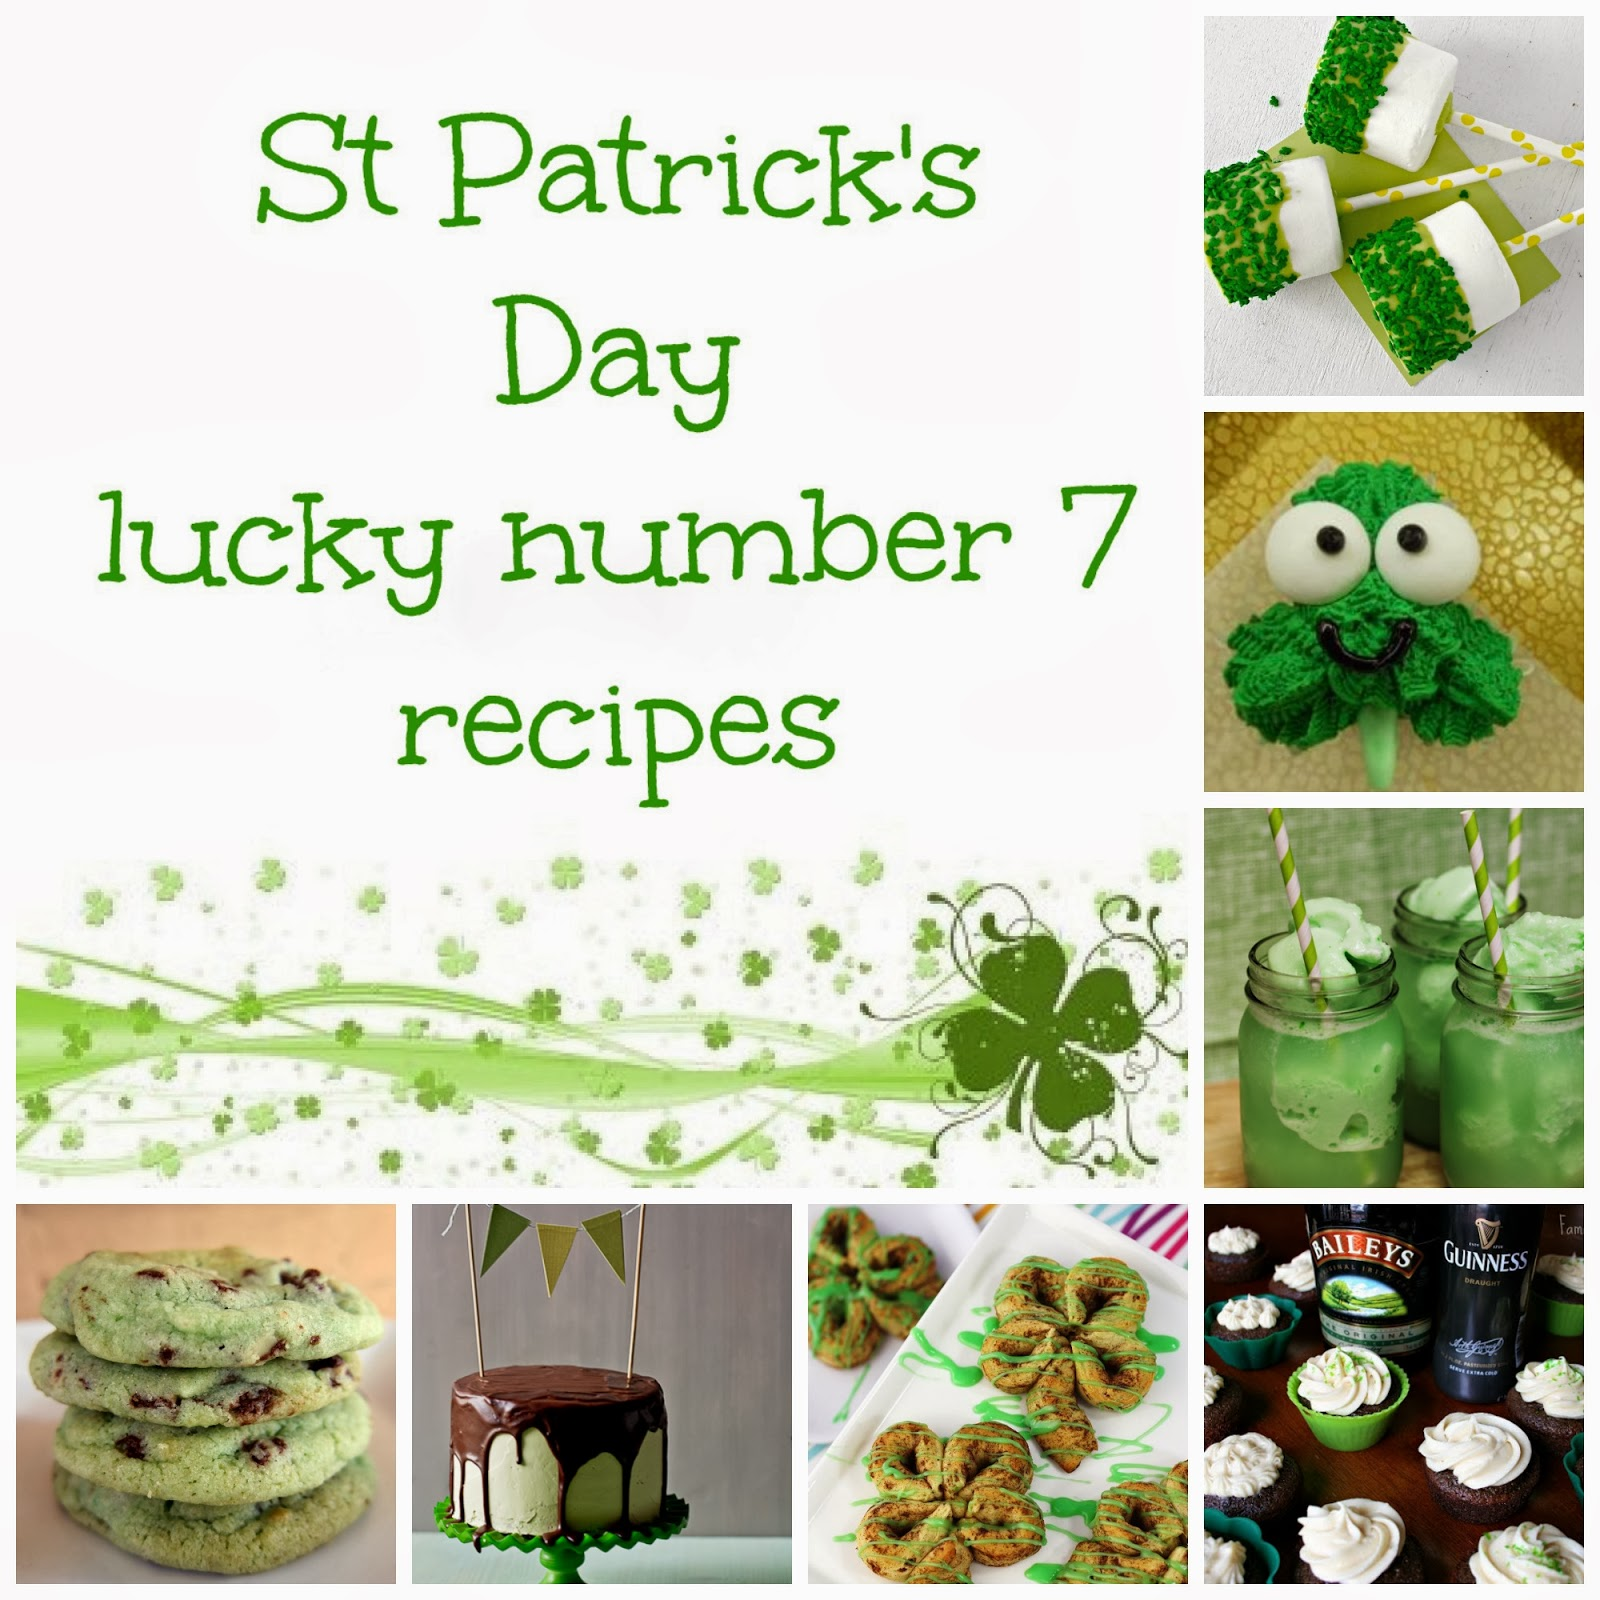 St Patrick's Day lucky number 7 recipes